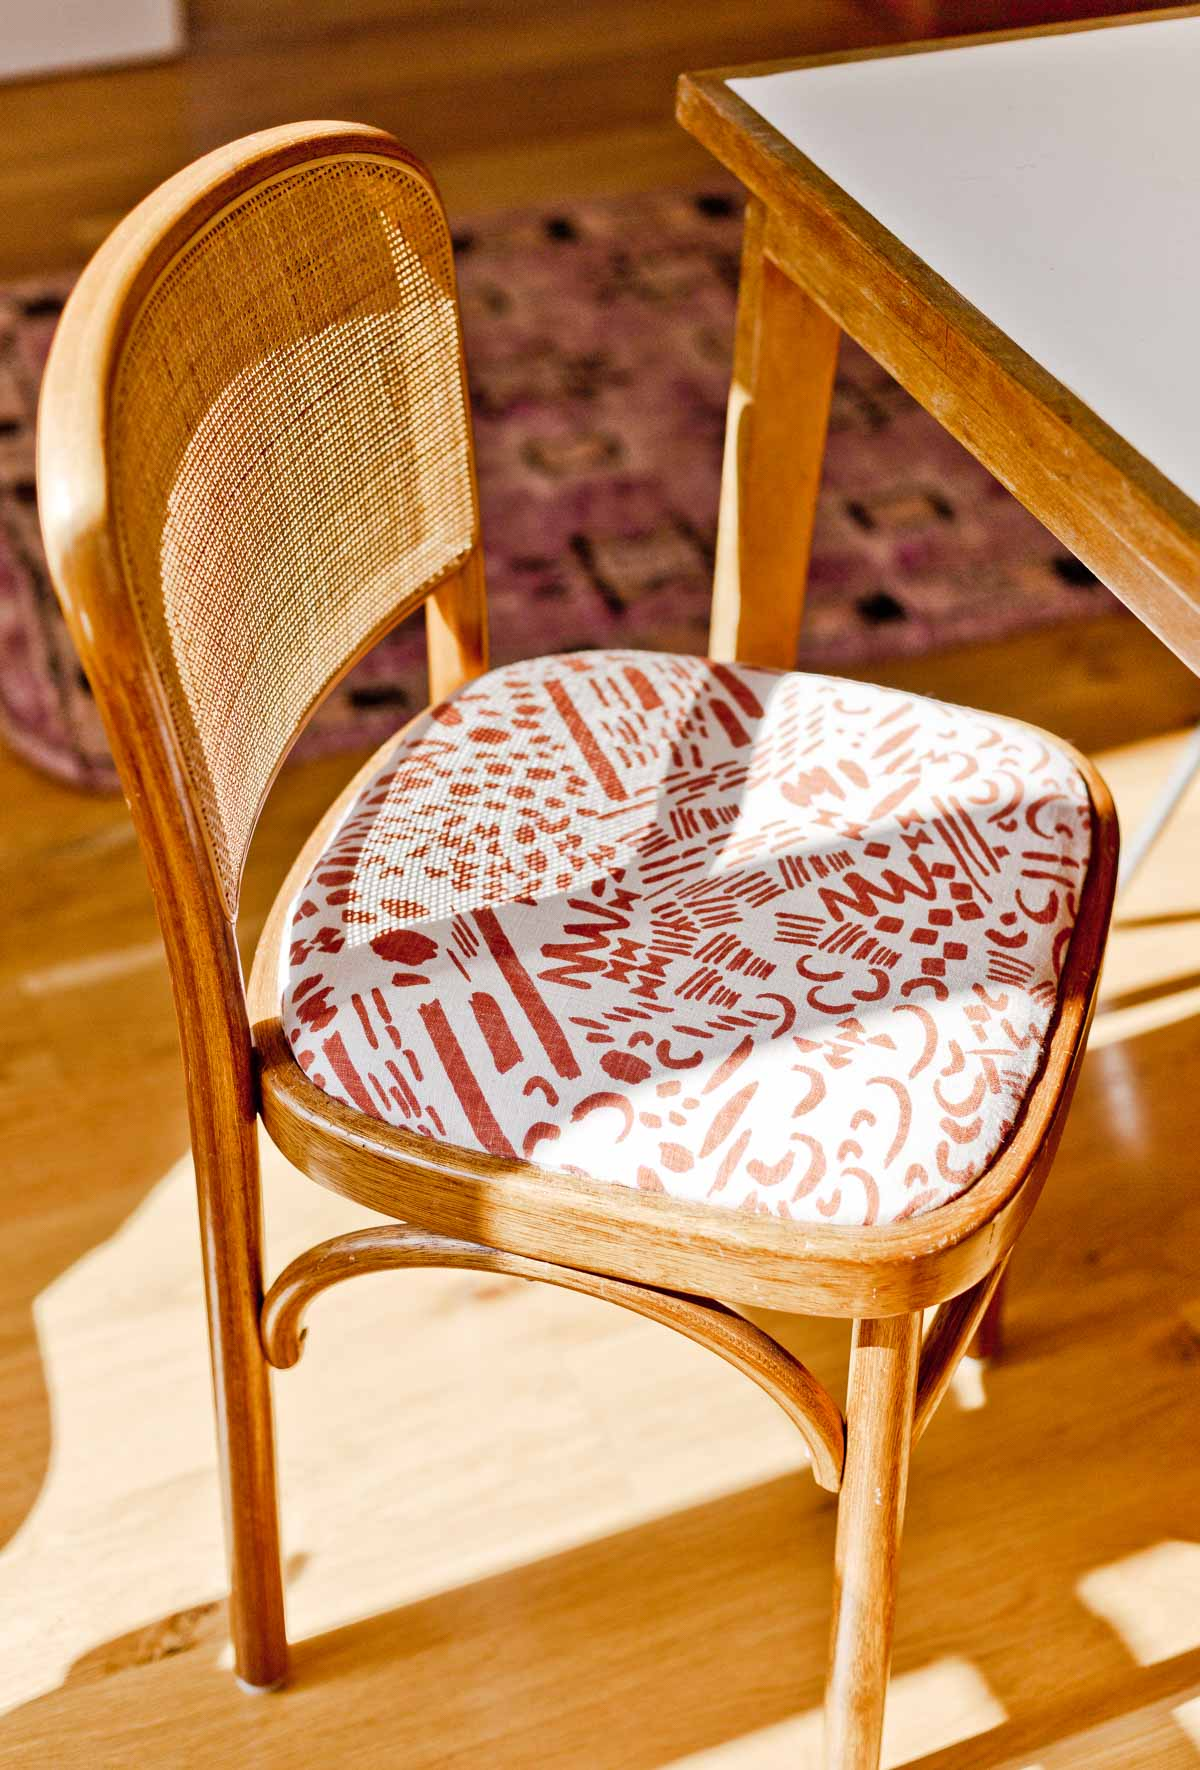 Learn how to reupholster a fabric seat chair (dining room chairs) with really cool printed fabrics. Click through for the detailed tutorial that shares the step by step process (with photos of each step). #reupholstery #diy #chairs #diningchairs #jennypennywood #diyfurniture